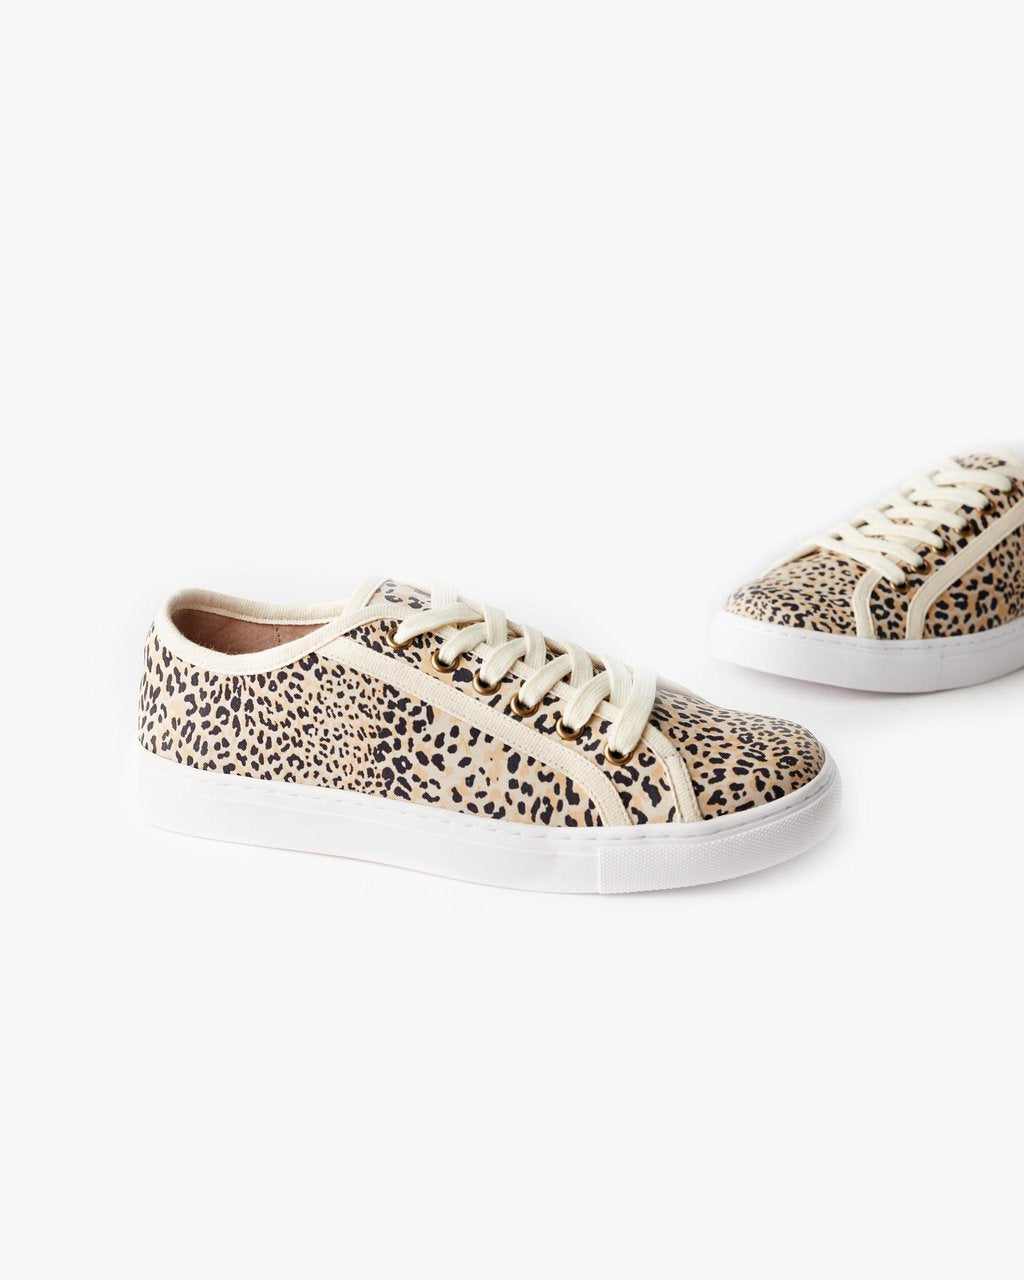 Hunter Leather Sneaker - Honey Leopard